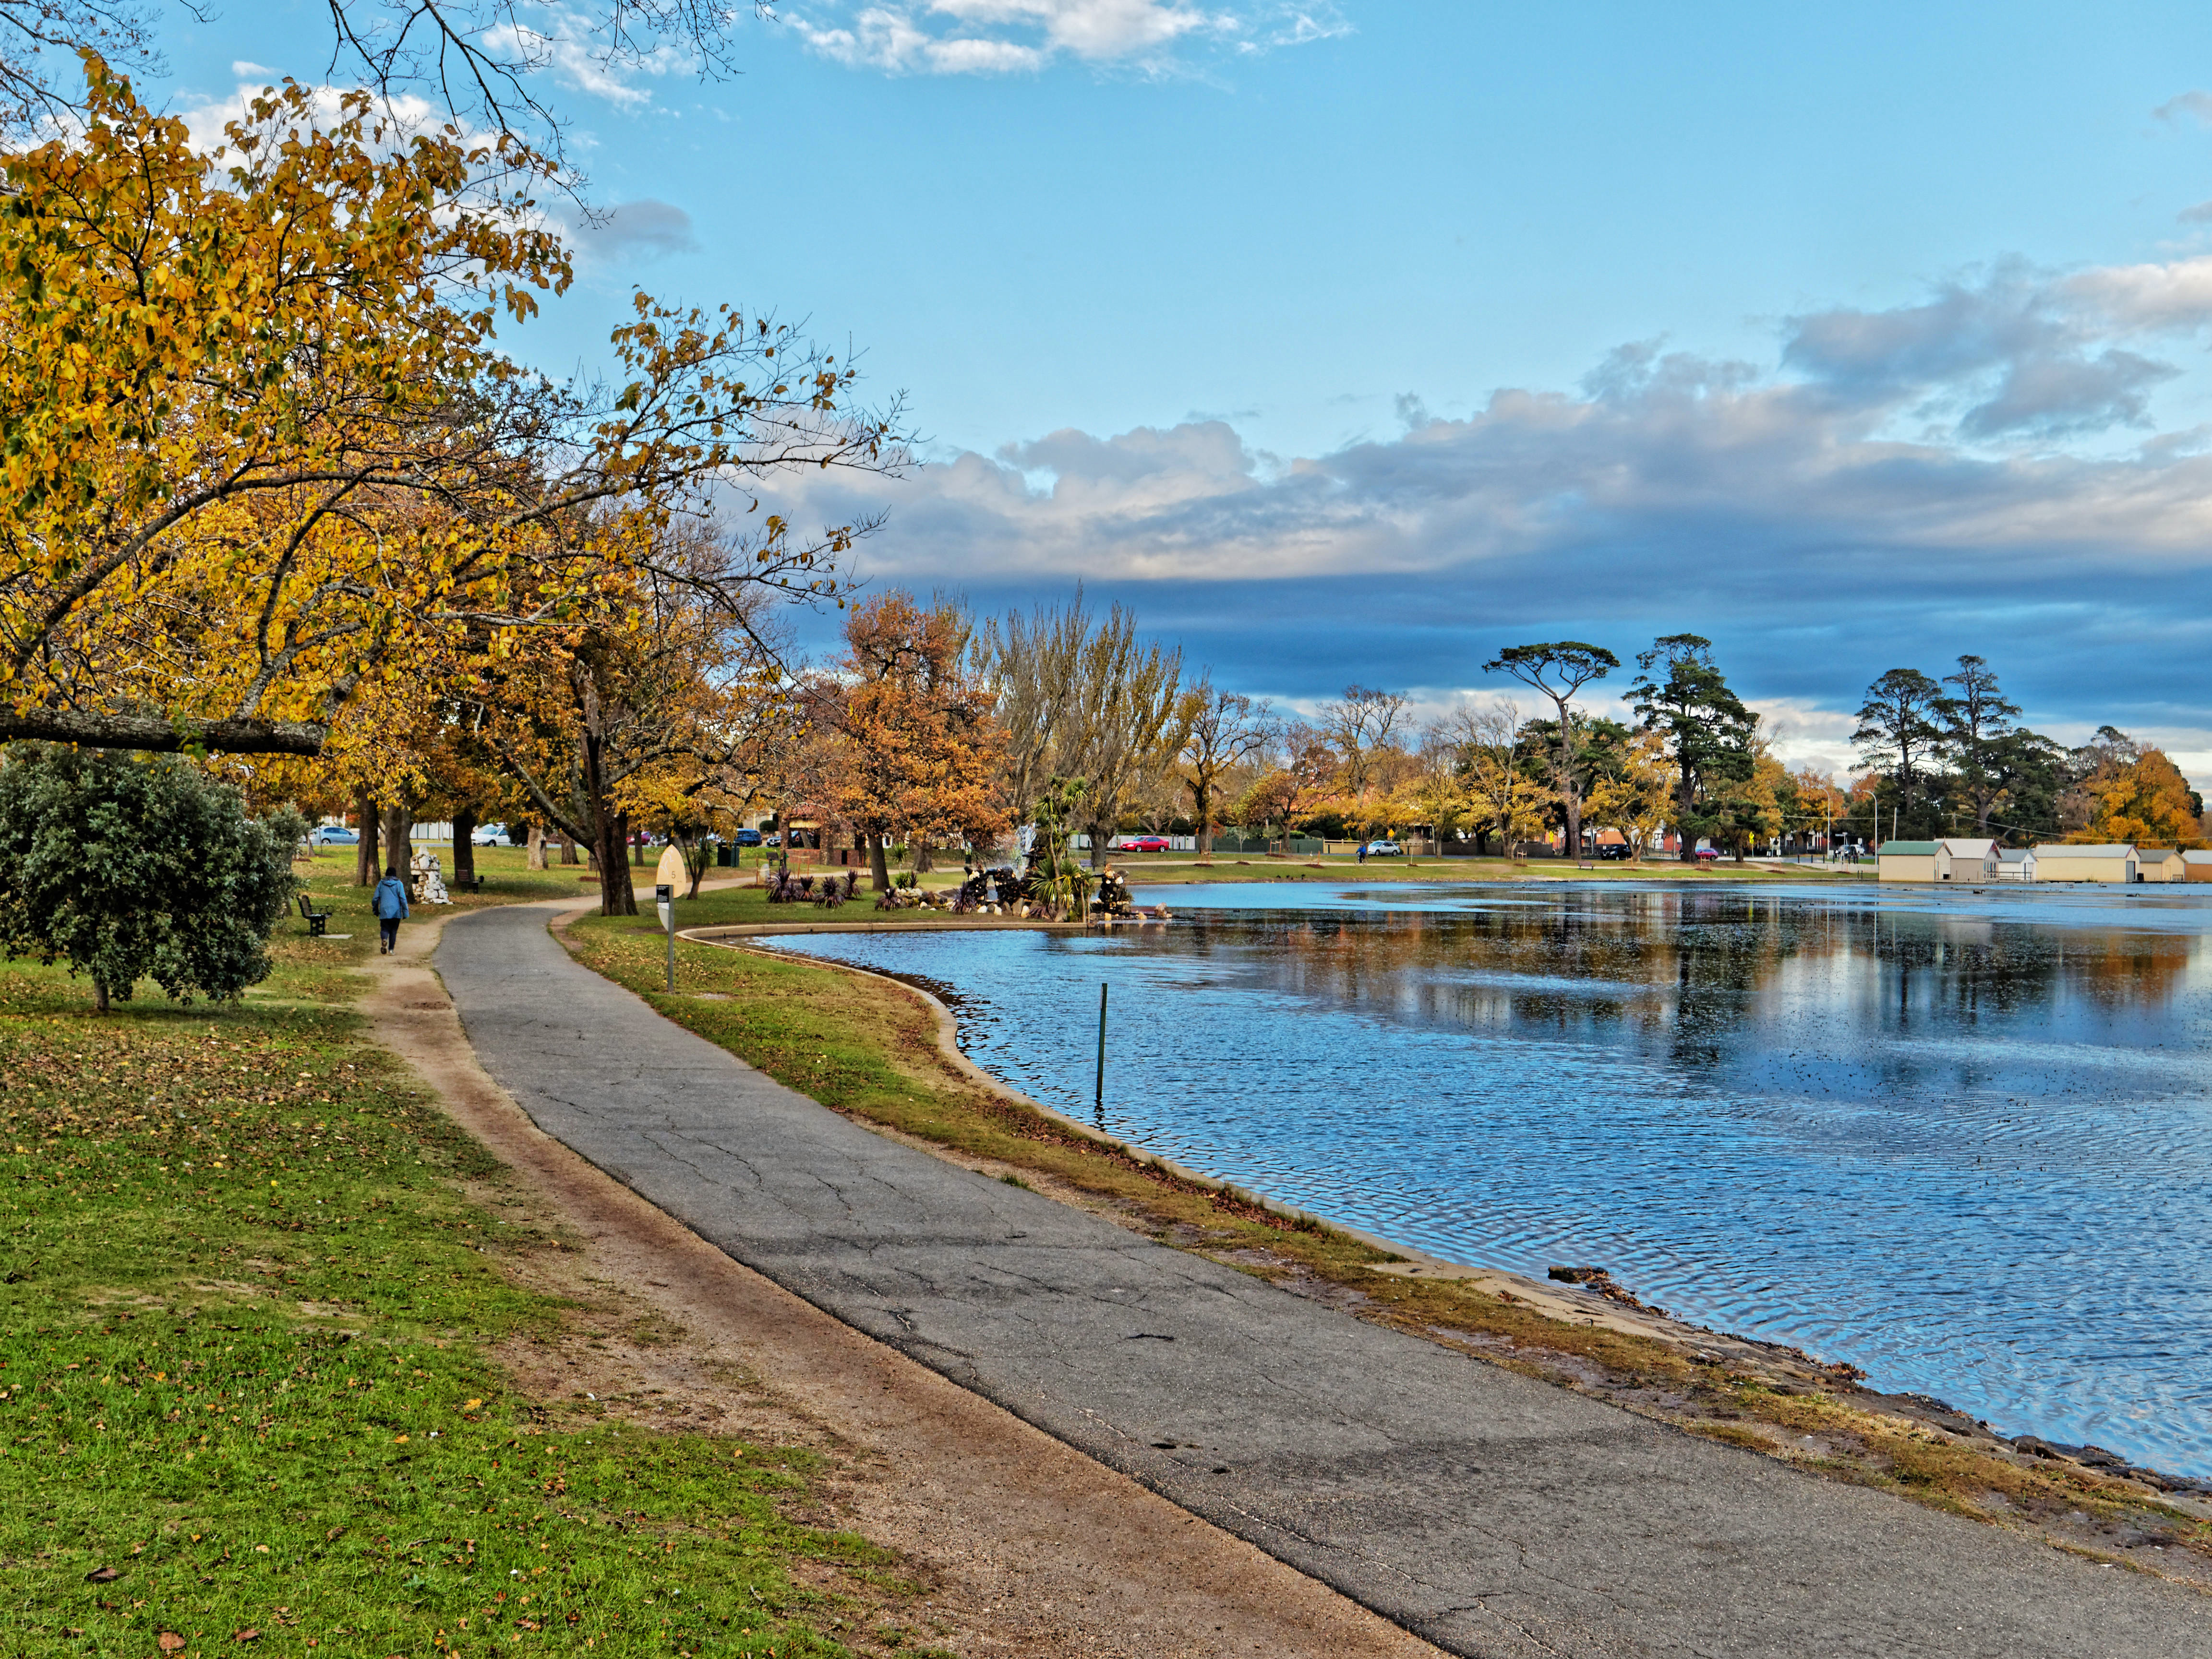 Lake-Wendouree-23.jpeg